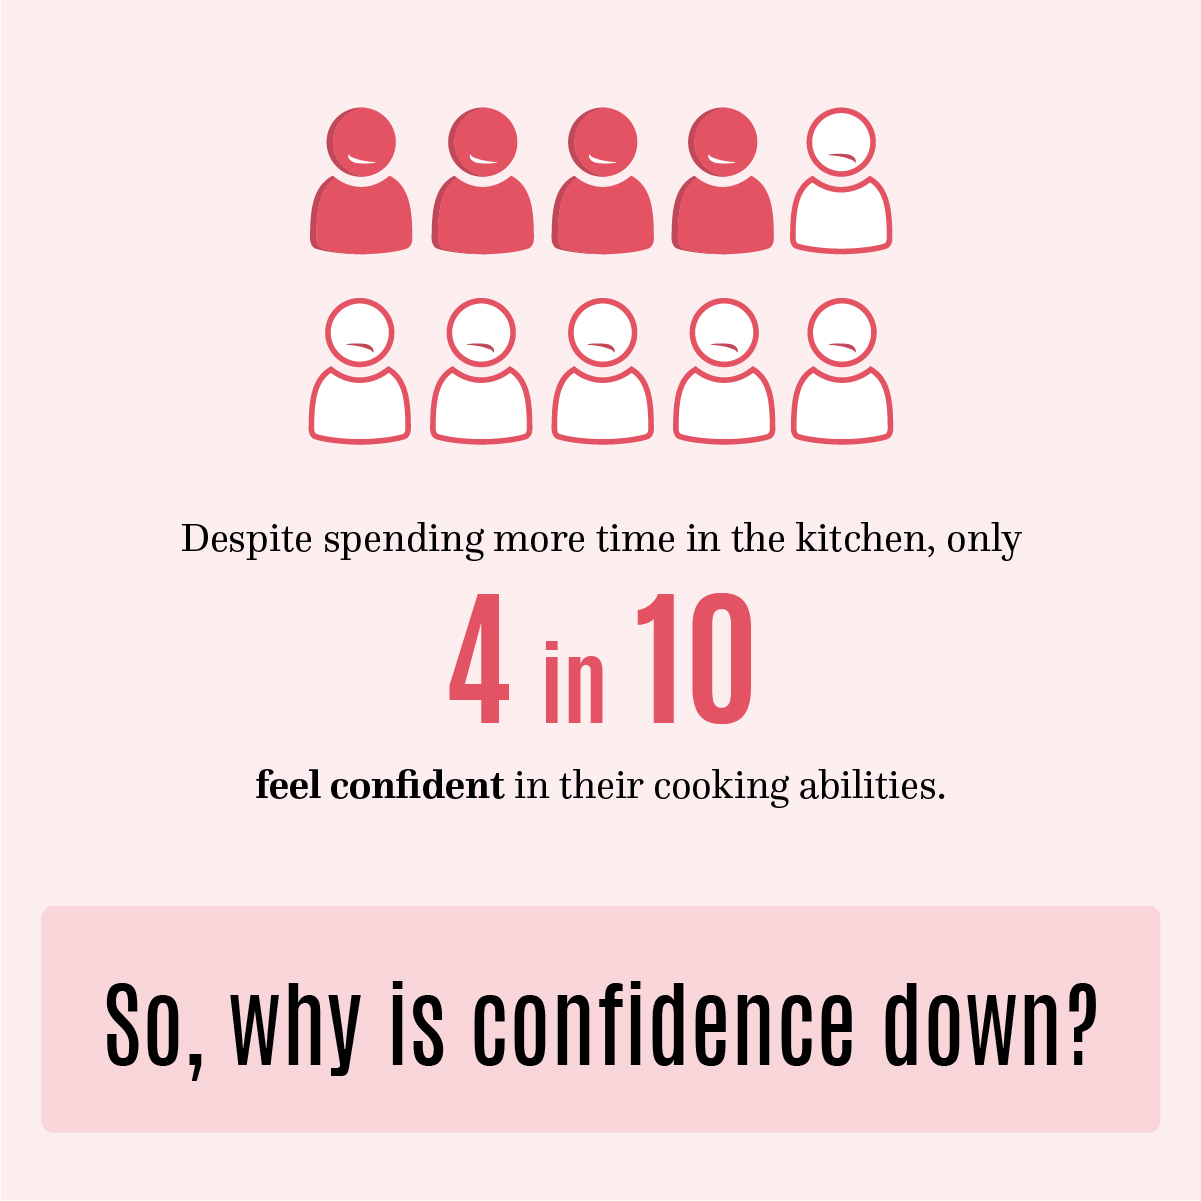 Despite spending more time in the kitchen, only 4 in 10 feel confident in their cooking abilities. So, why is confidence down?